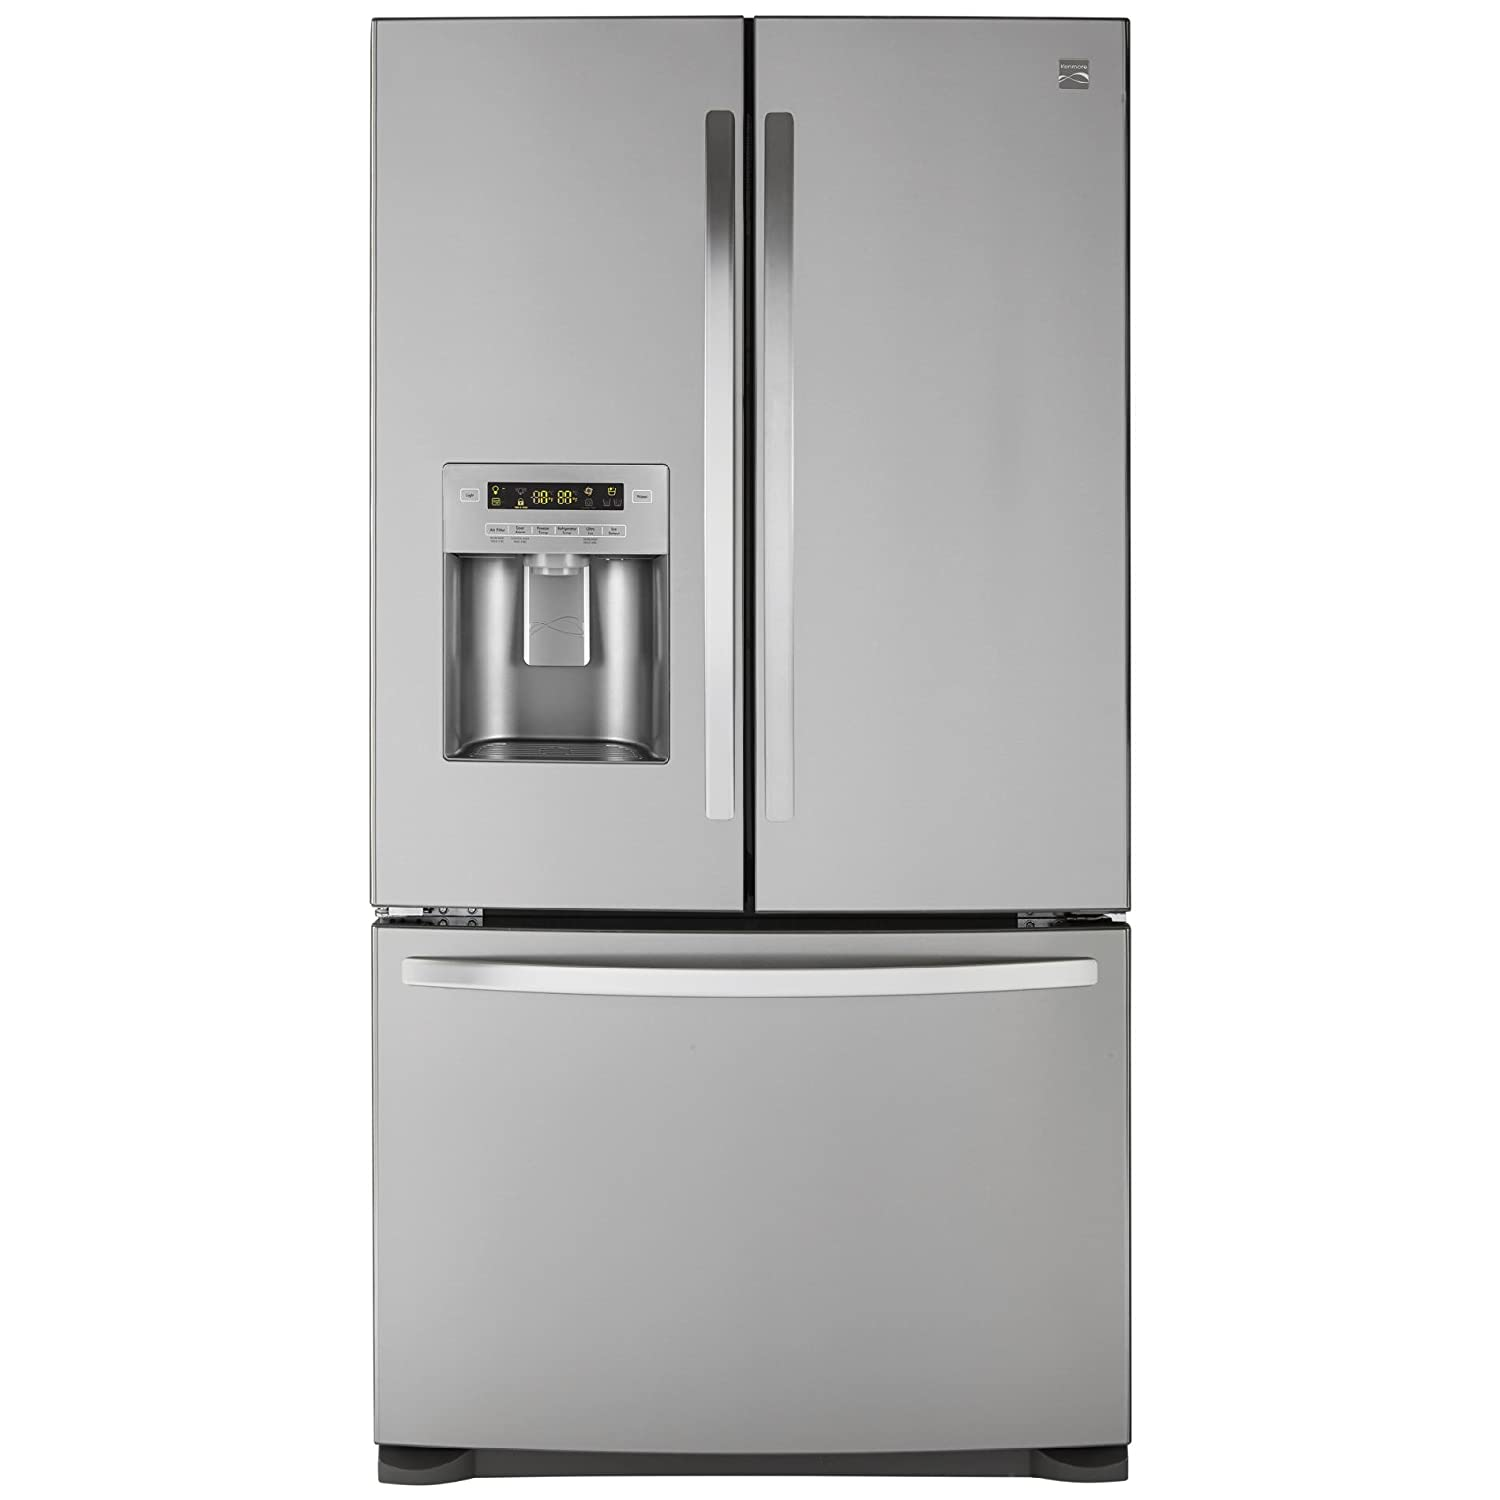 Kenmore 73053 26.8 cu. ft. French Door Bottom Freezer Refrigerator in Stainless Steel, includes delivery and hookup 4673053